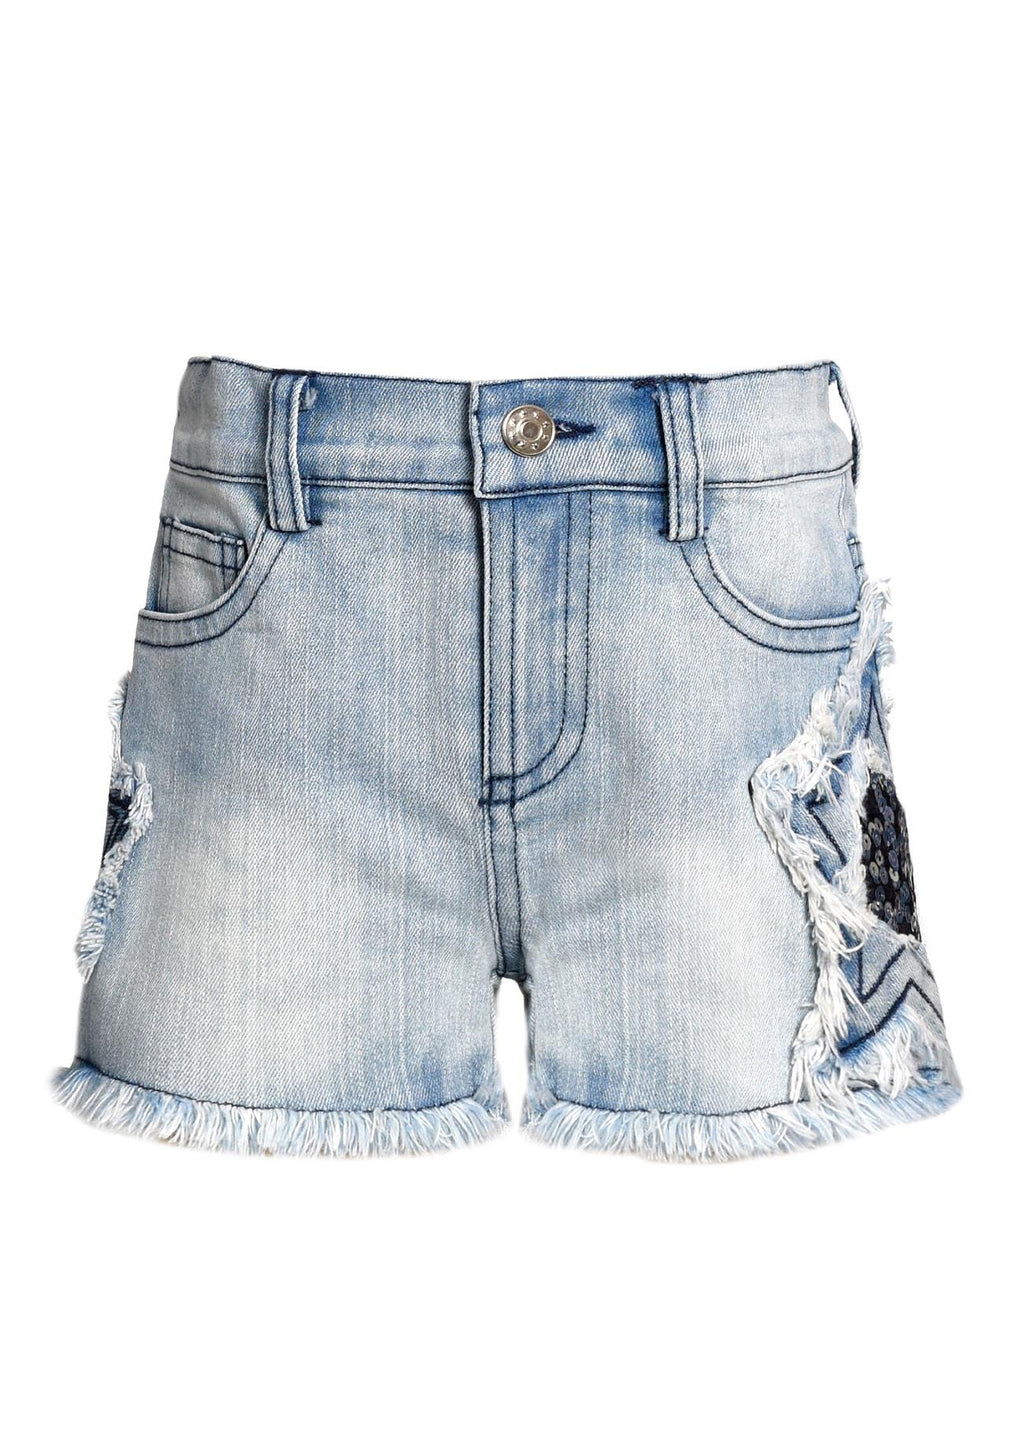 Baby Sara Star Denim Shorts